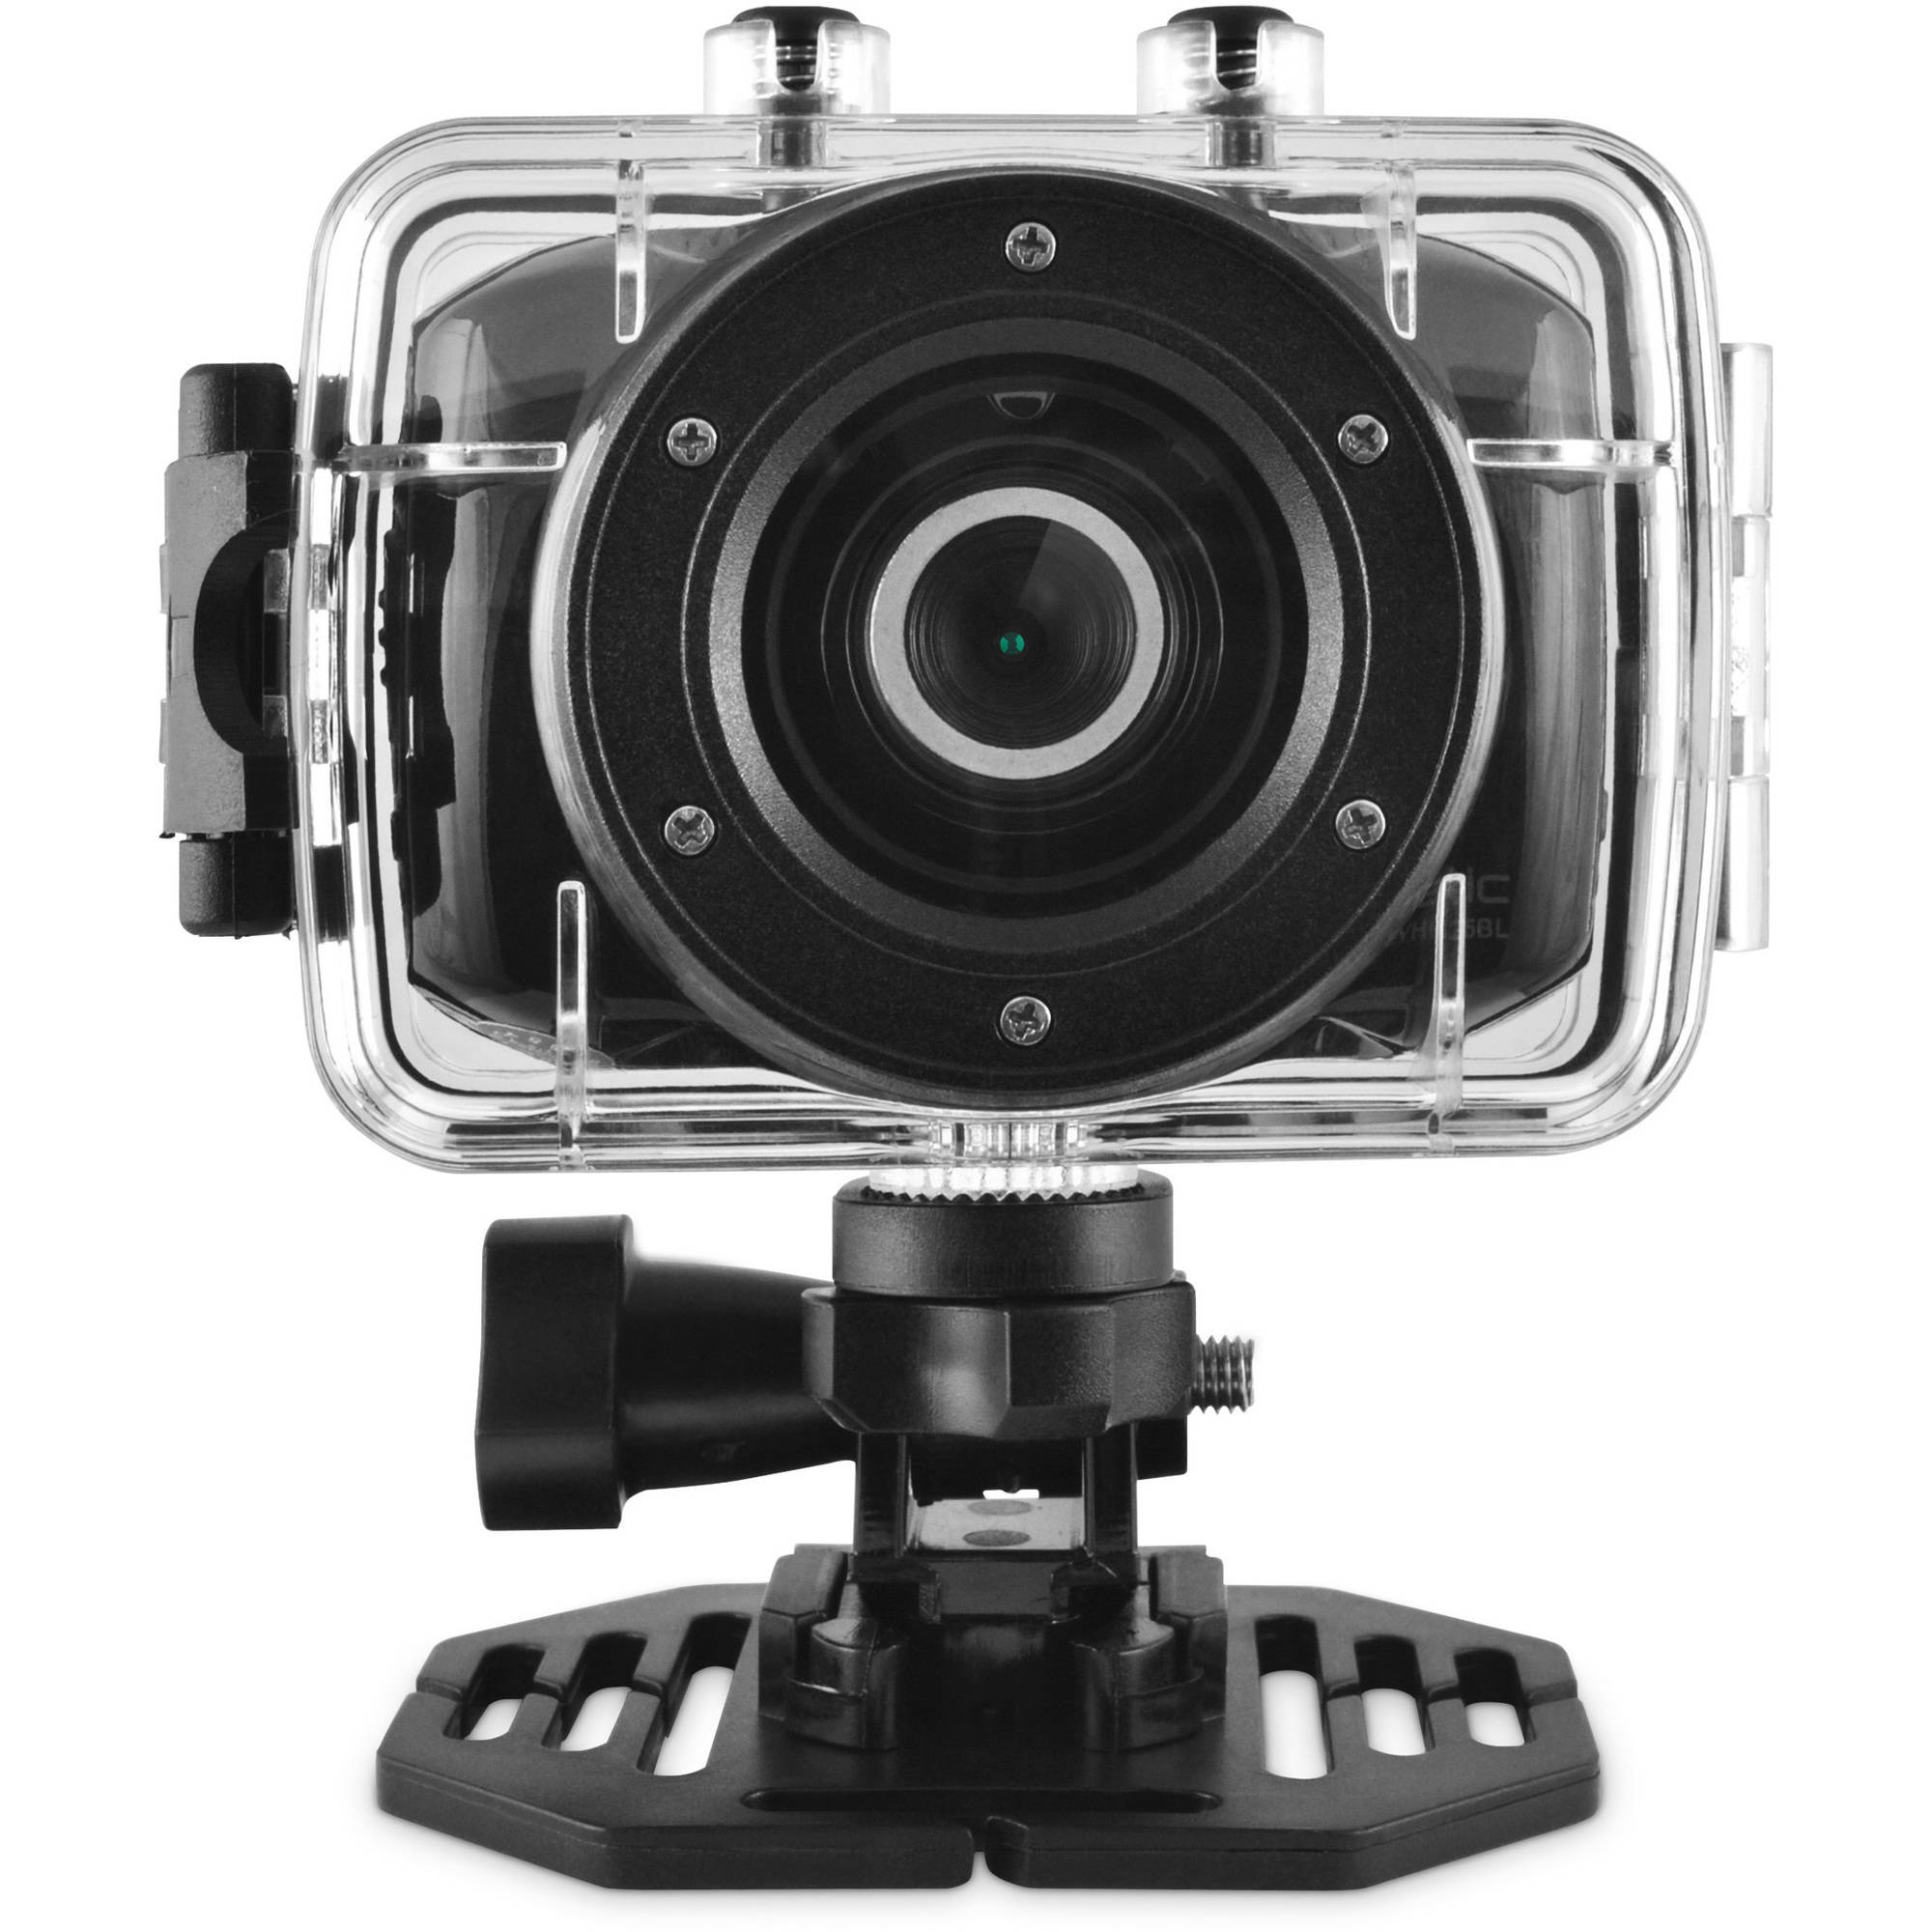 Ematic ActionCam HD Waterproof Camera with Post and Helmet Mount